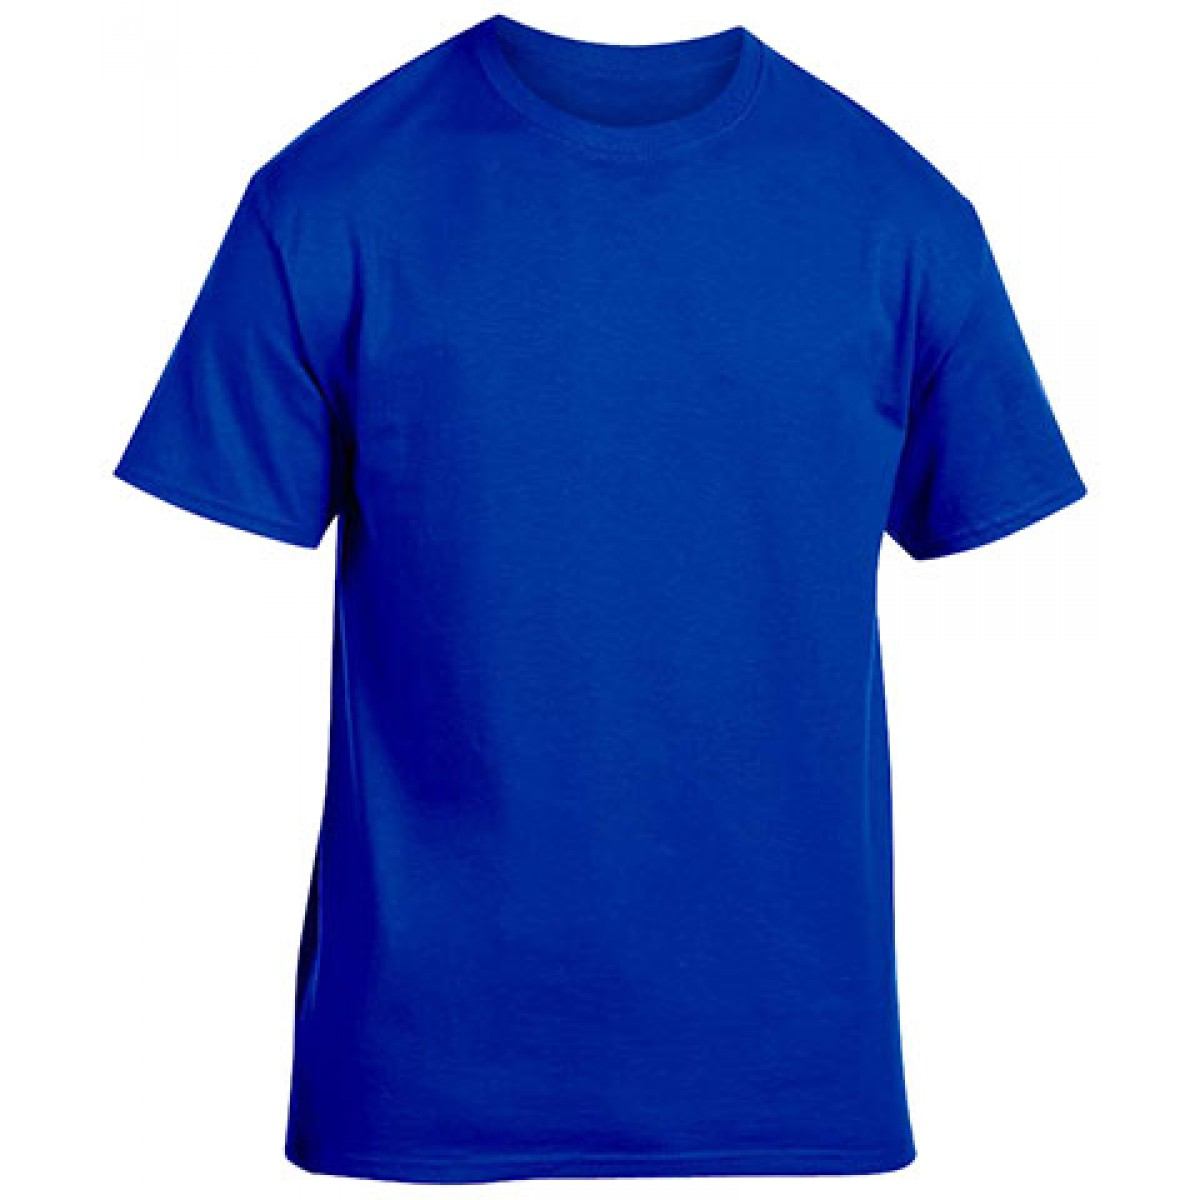 Cotton Short Sleeve T-Shirt-Royal Blue-M